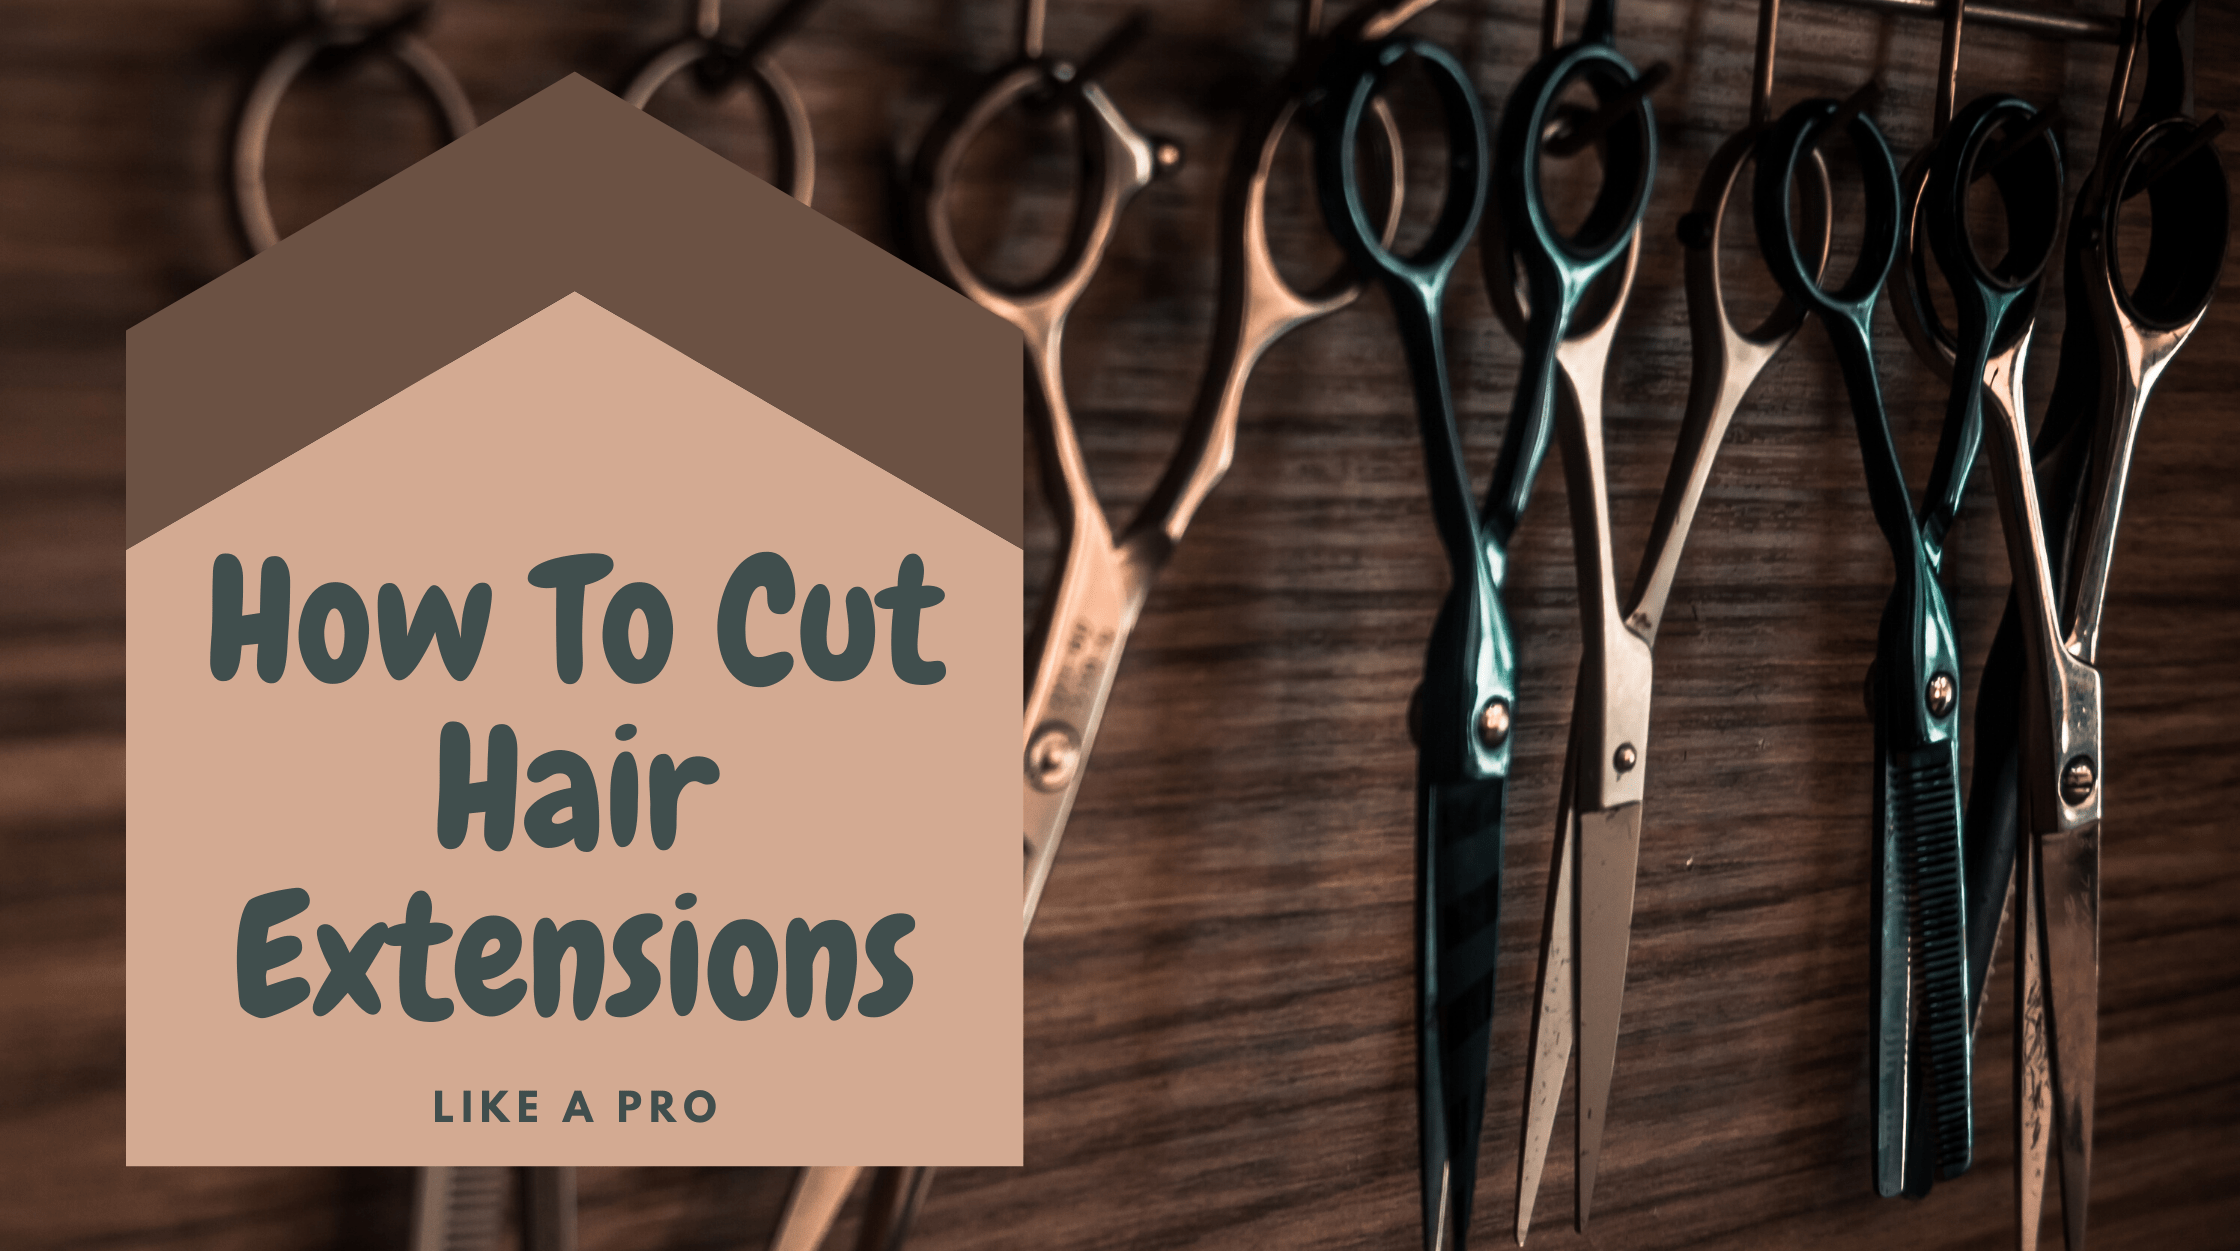 How To Cut Hair Extensions